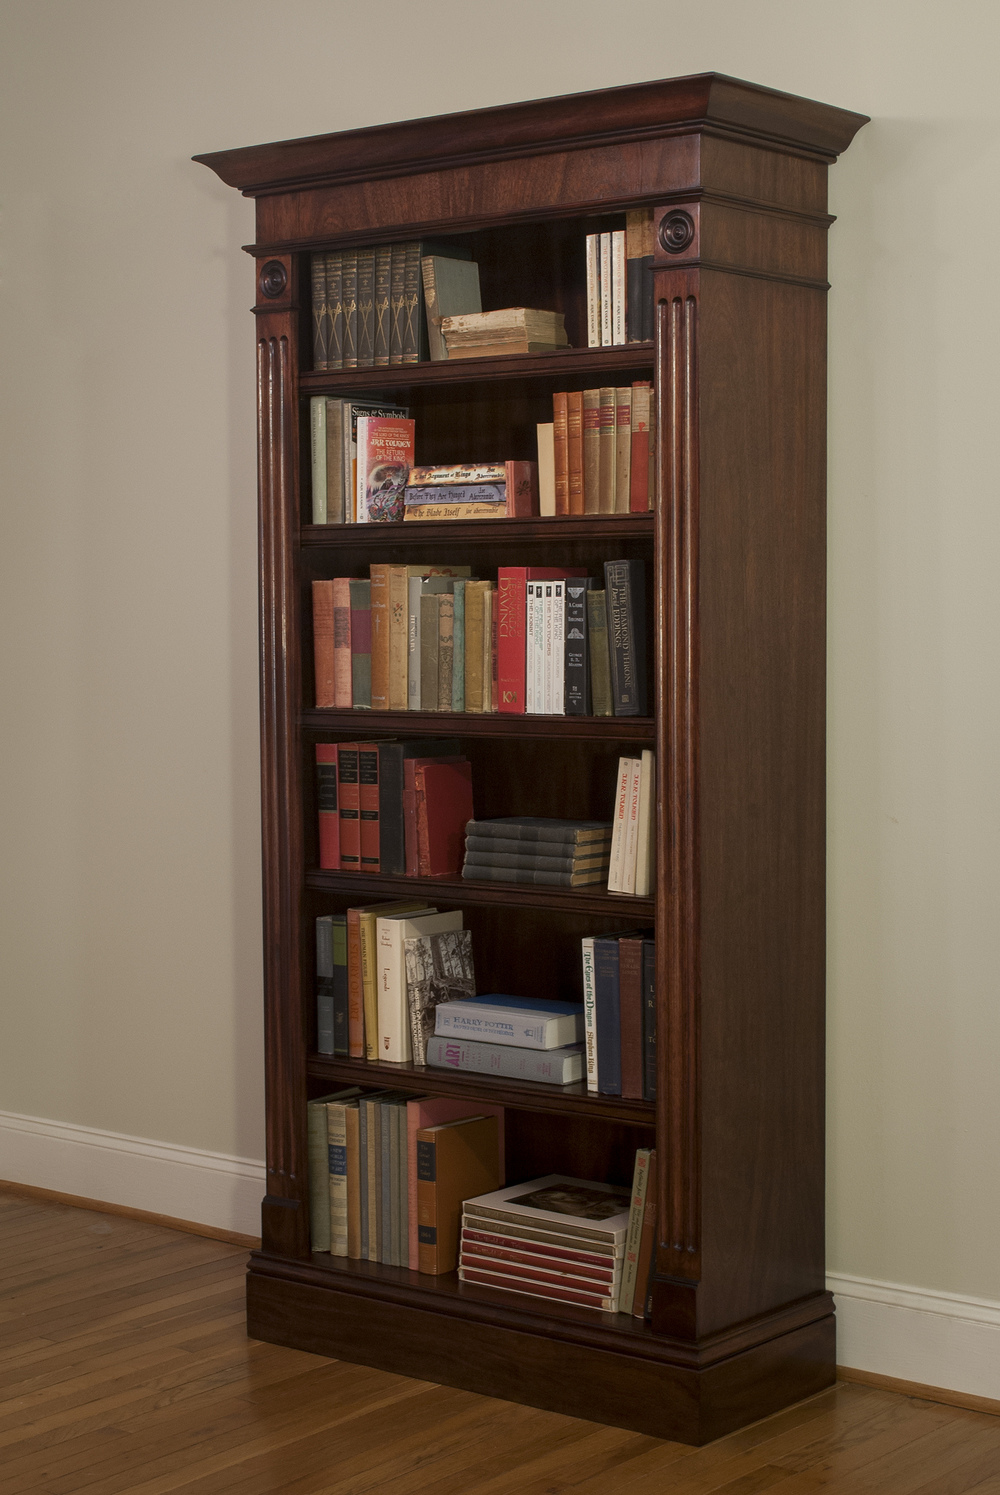 Traditional-mahogany-bookshelf.jpg